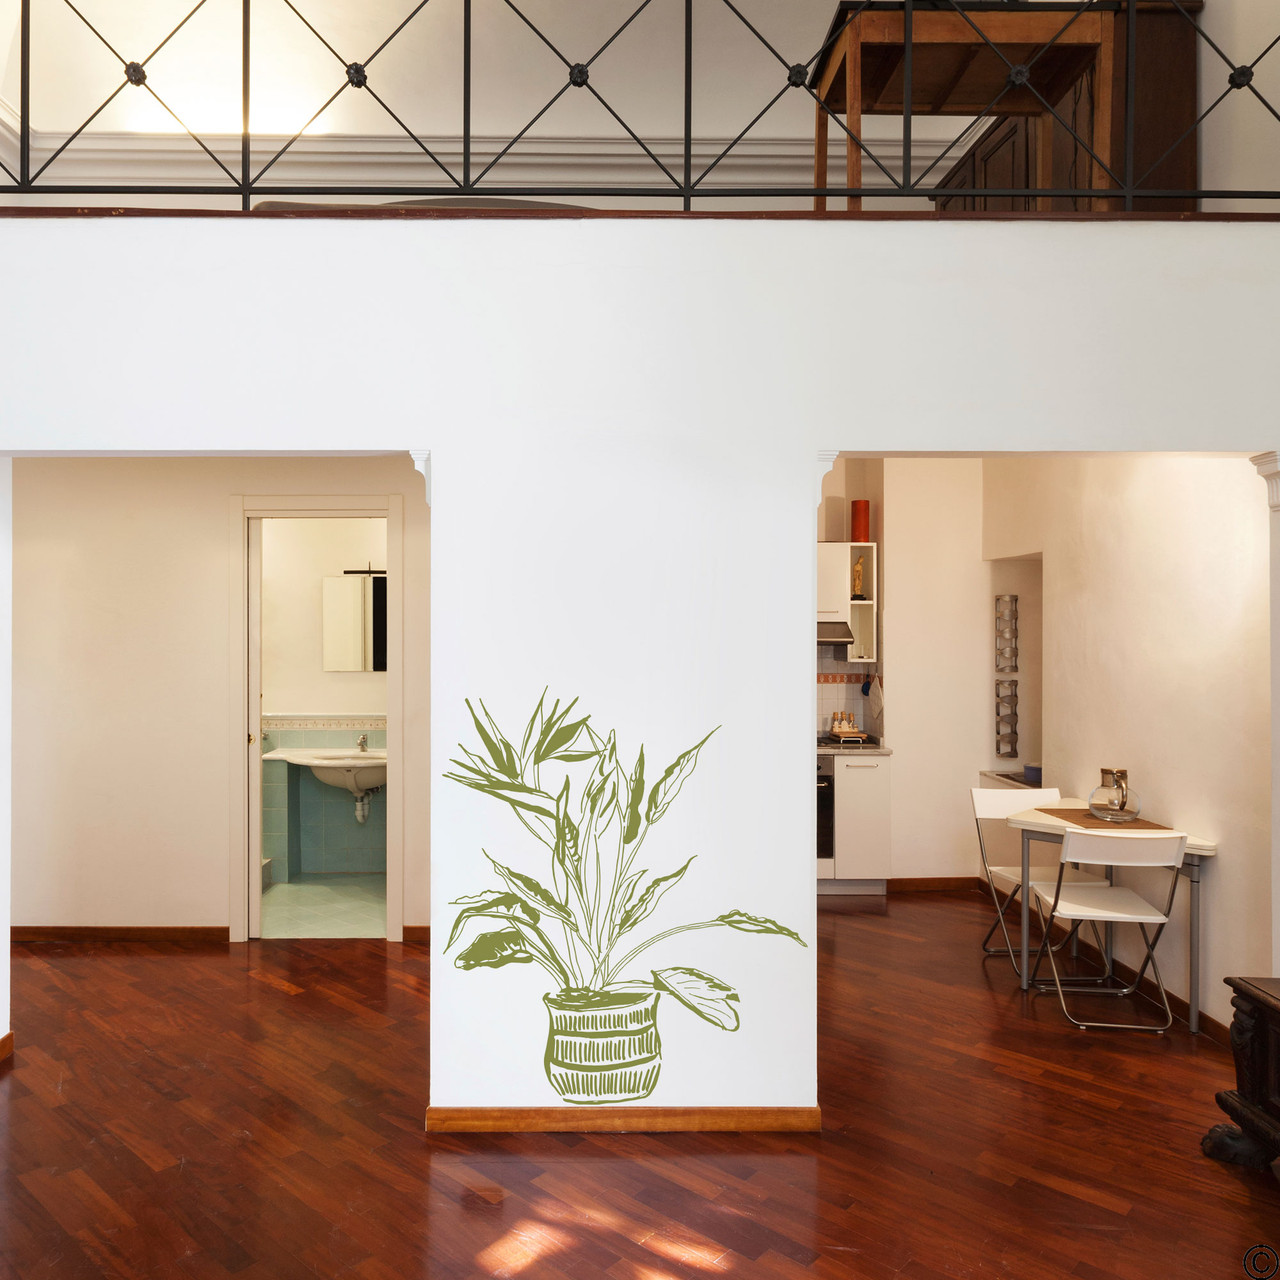 The hand drawn Bird of Paradise potted plant wall decal in the limited edition marsh green vinyl color.